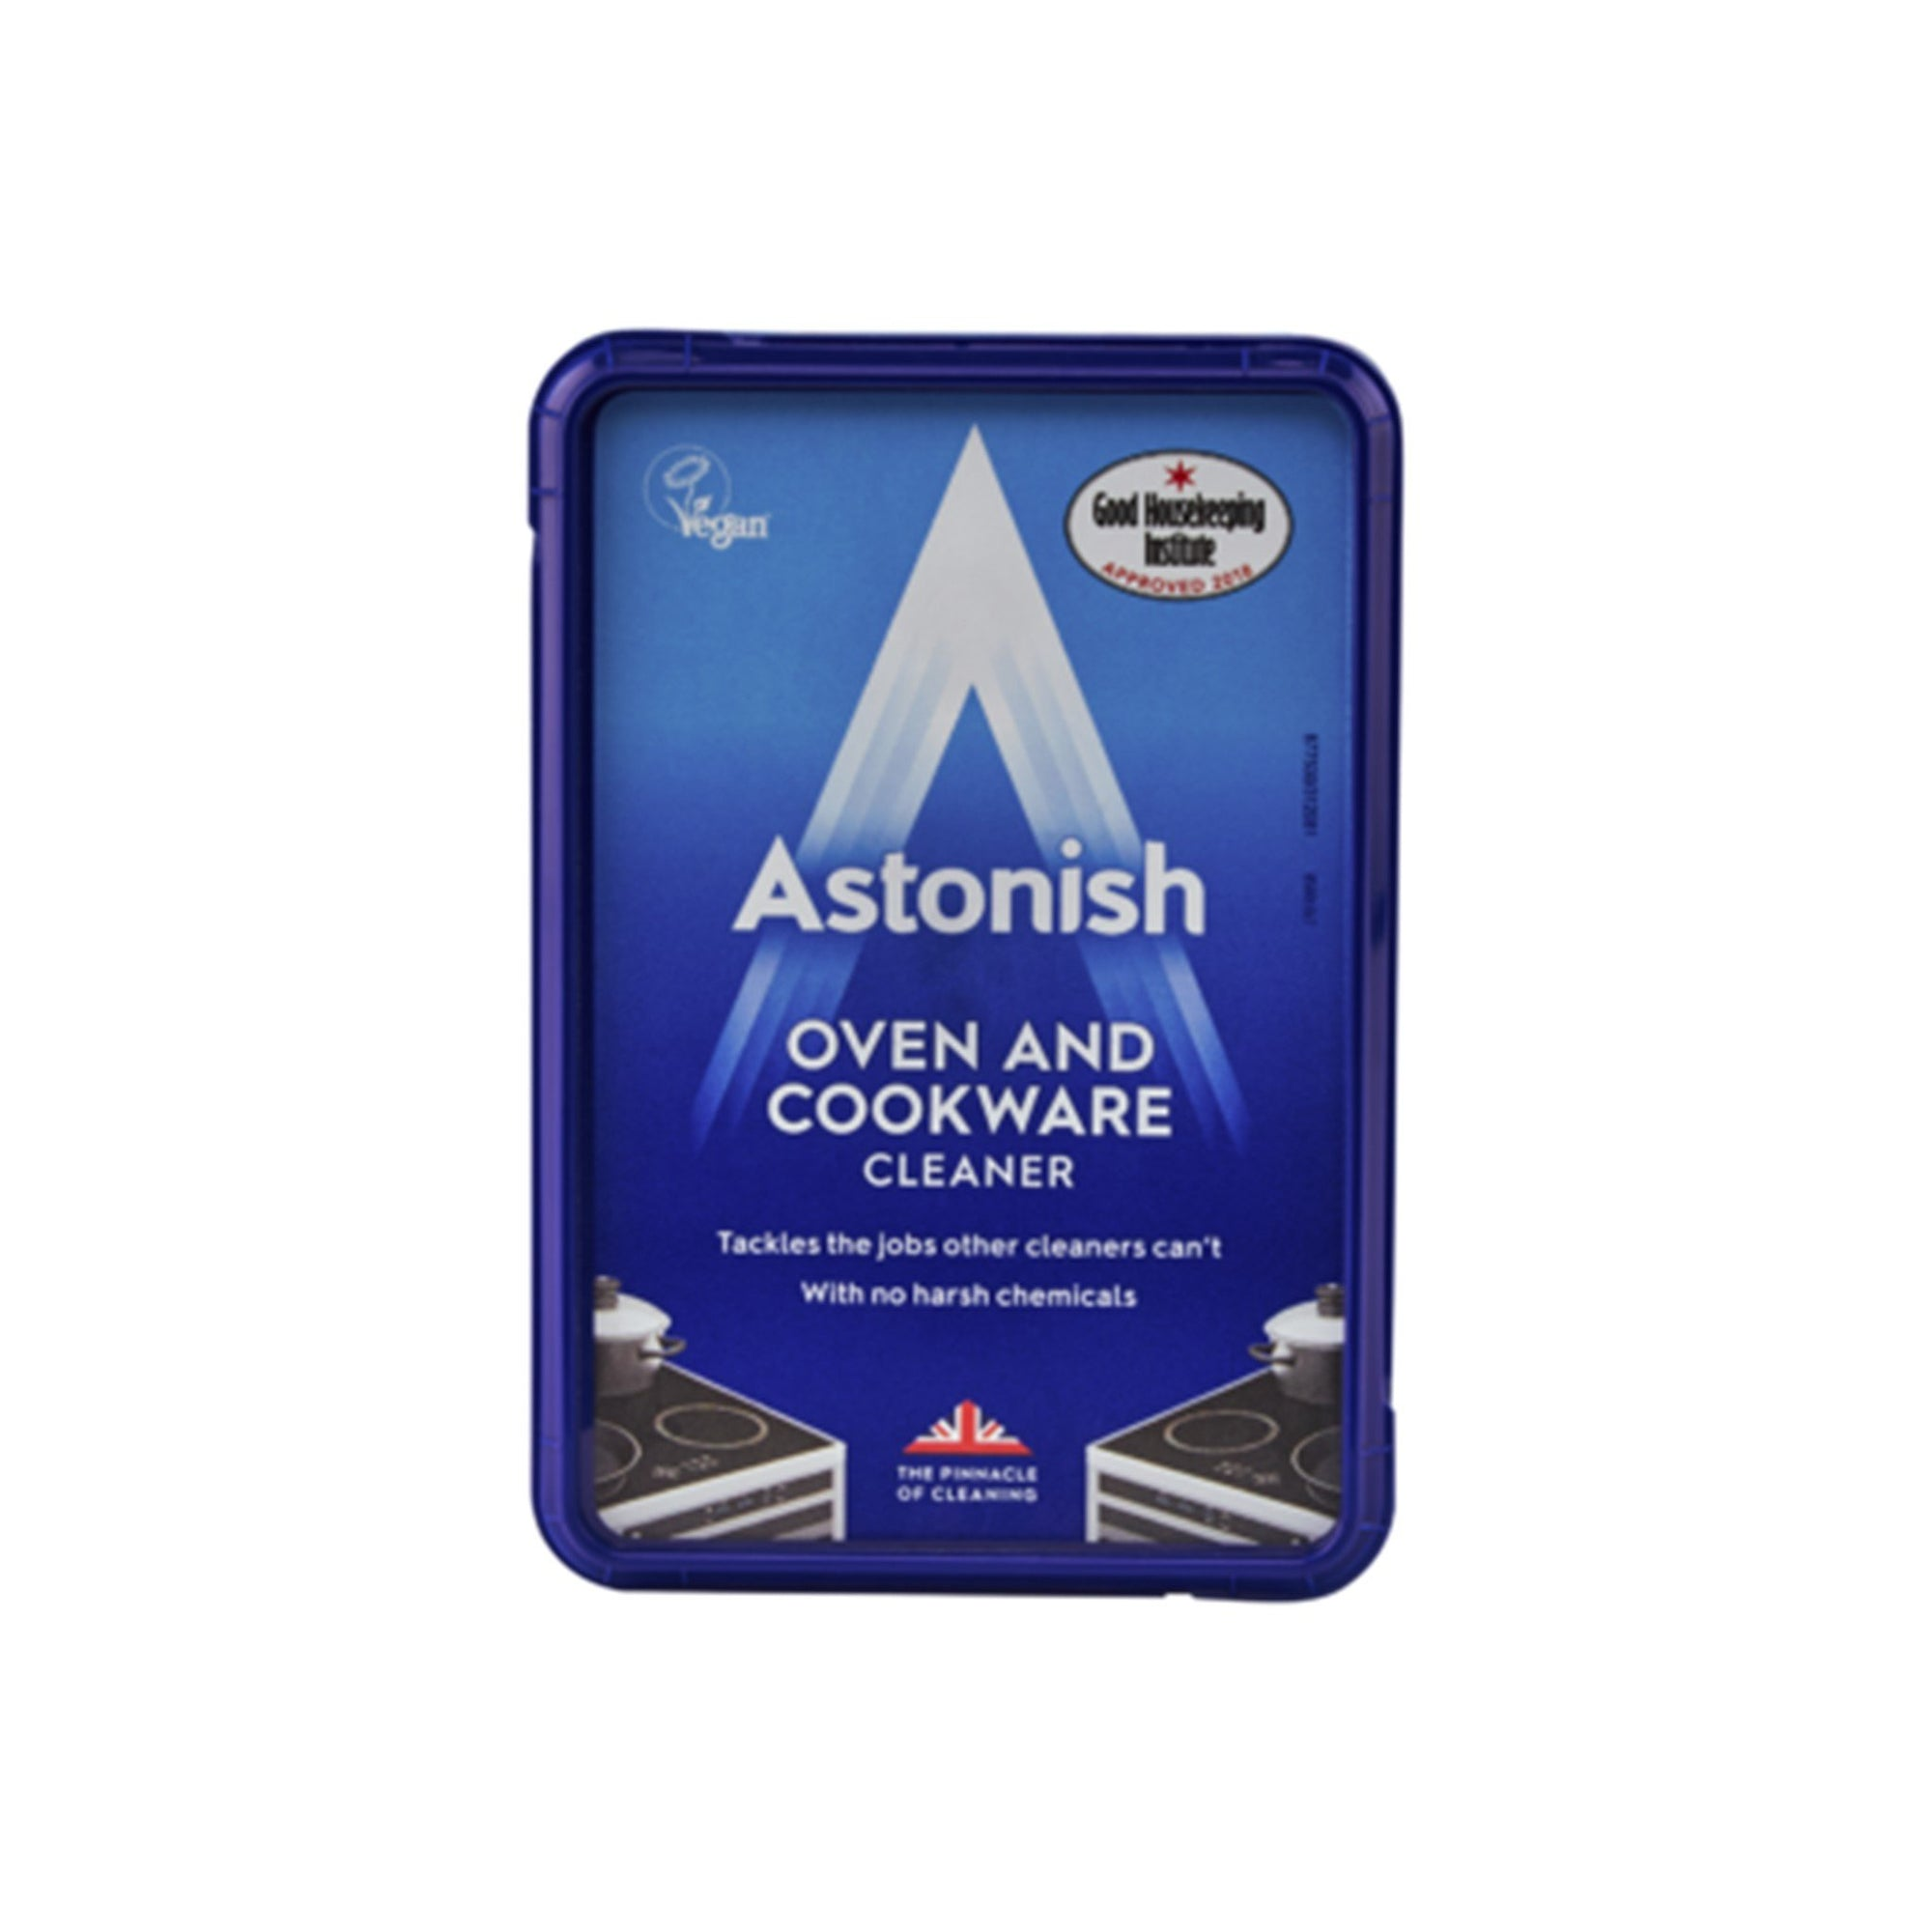 Astonish Original Oven & Cookware Cleaner 150g